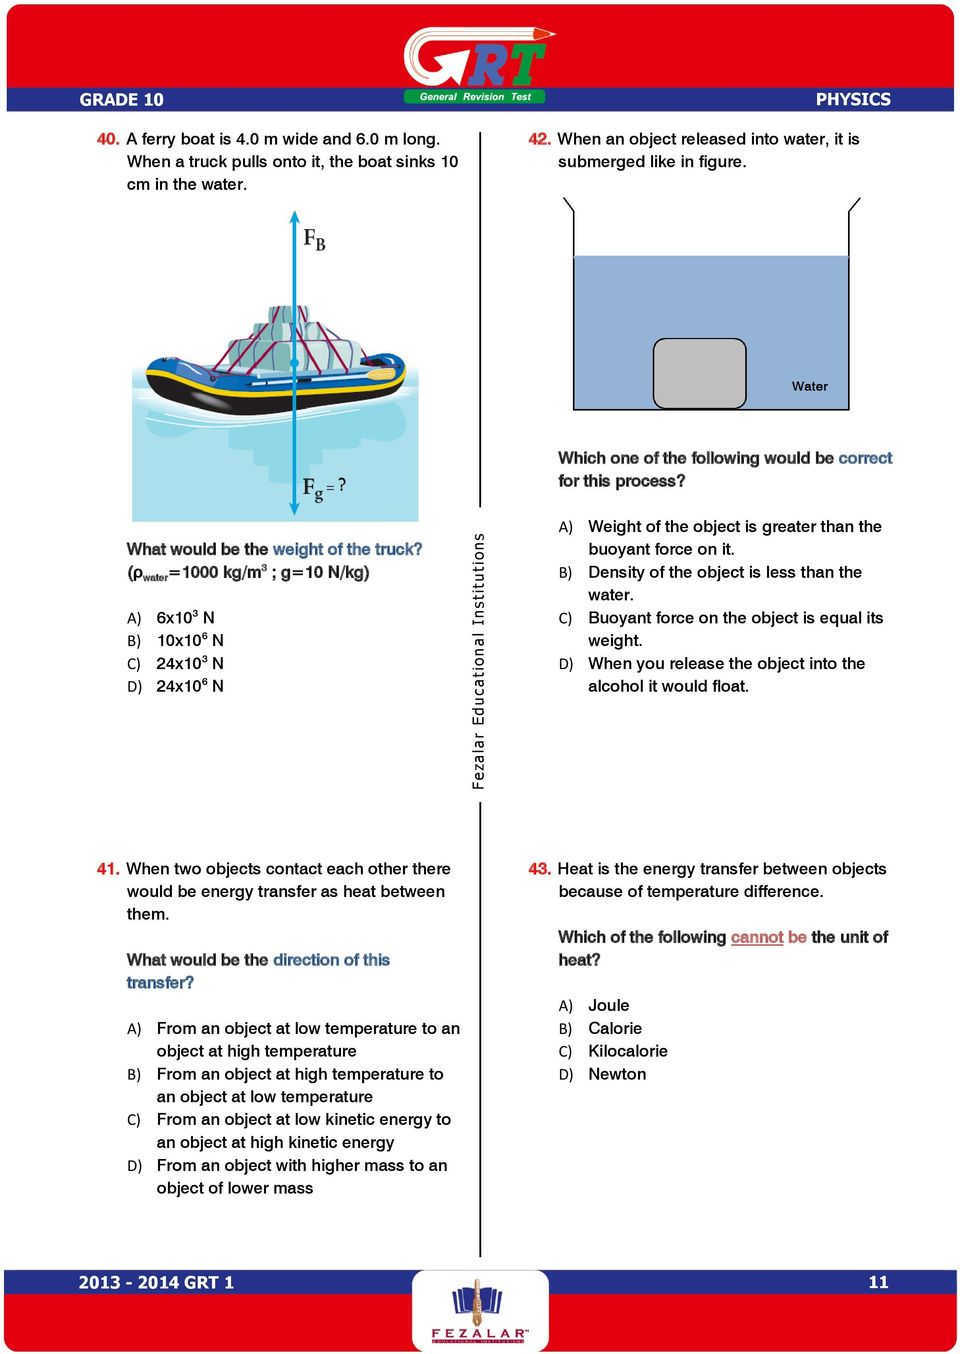 (ρ water =1000 kg/m 3 ; g=10 N/kg) A) 6x10 3 N B) 10x10 6 N C) 24x10 3 N D) 24x10 6 N A) Weight of the object is greater than the buoyant force on it. B) Density of the object is less than the water.